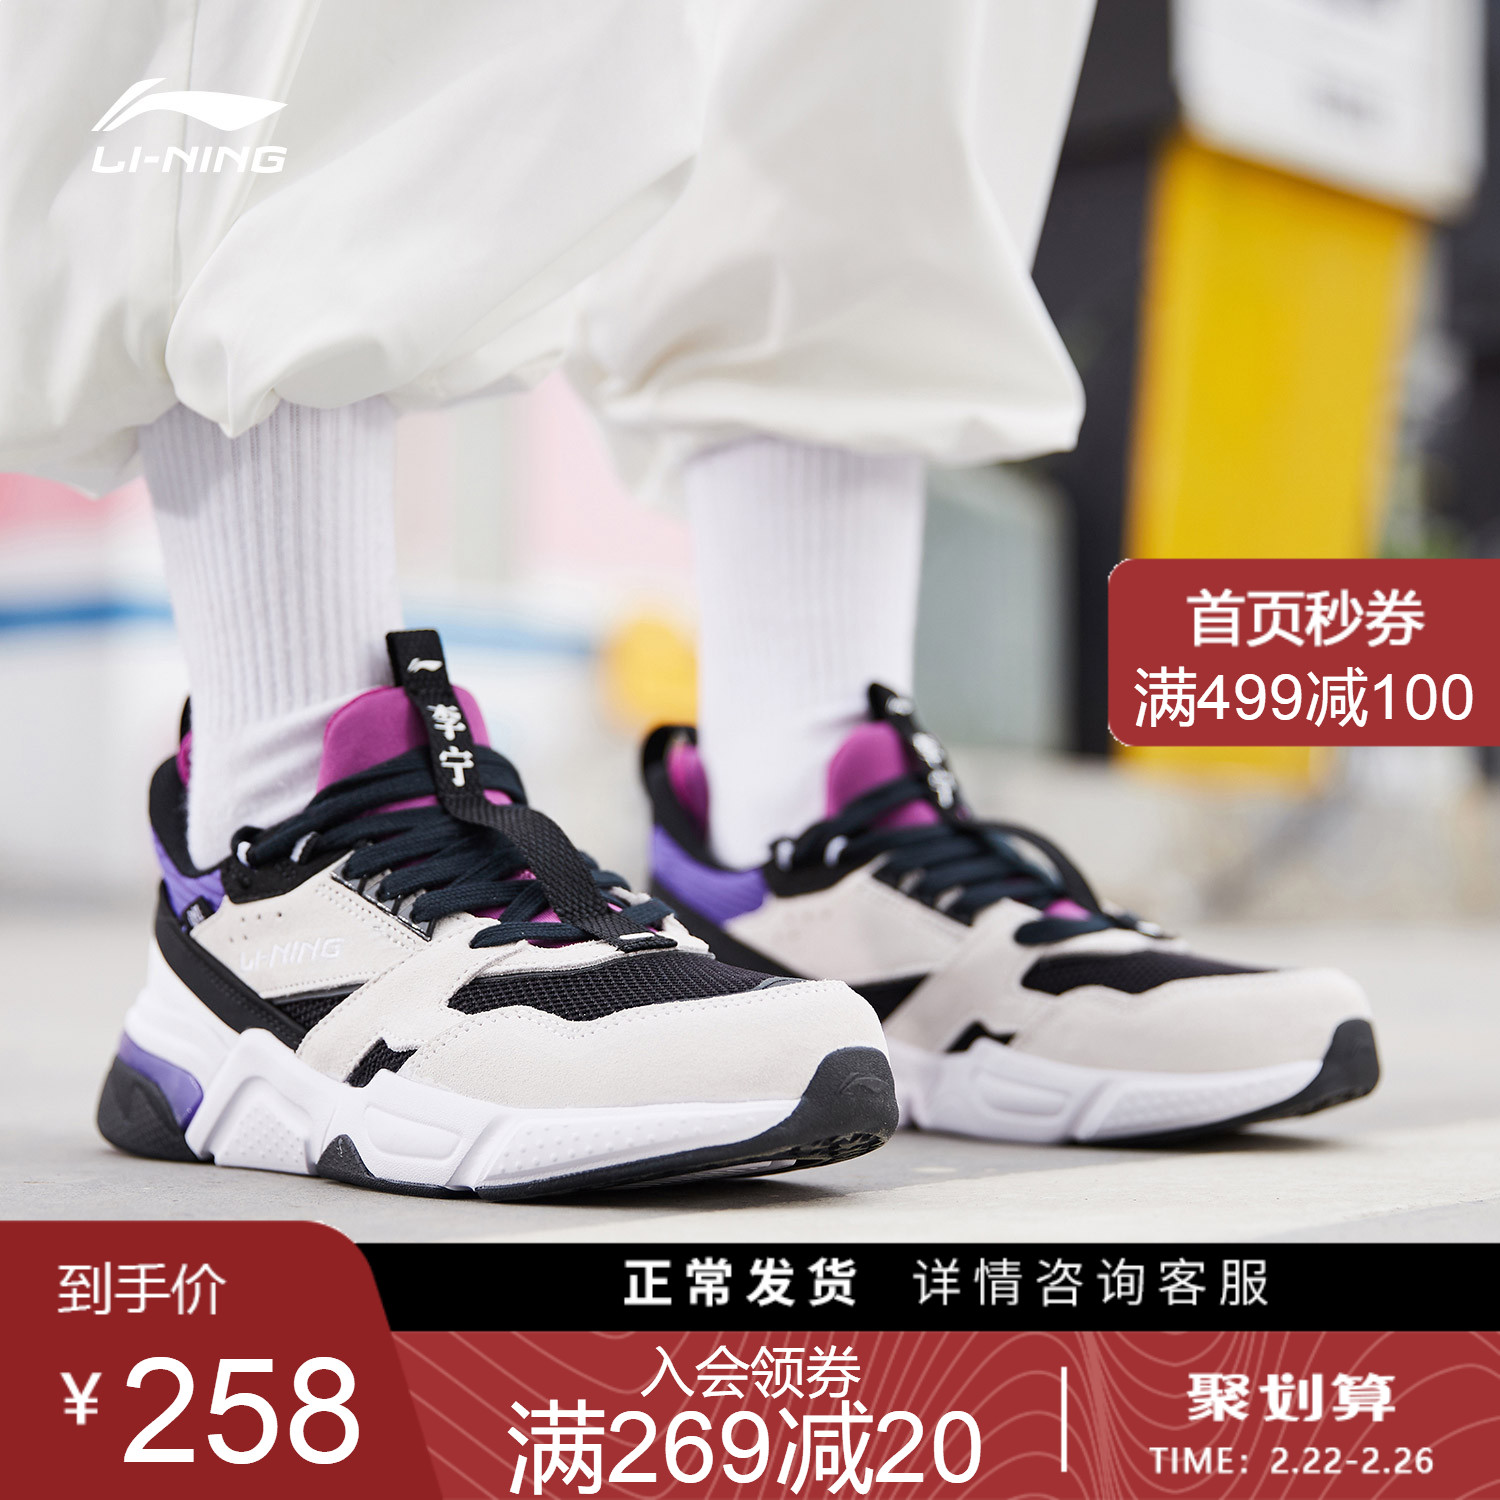 Li Ning casual shoes women's shoes 001 departure classic retro dad shoes official website authentic couple shoes fashion sneakers